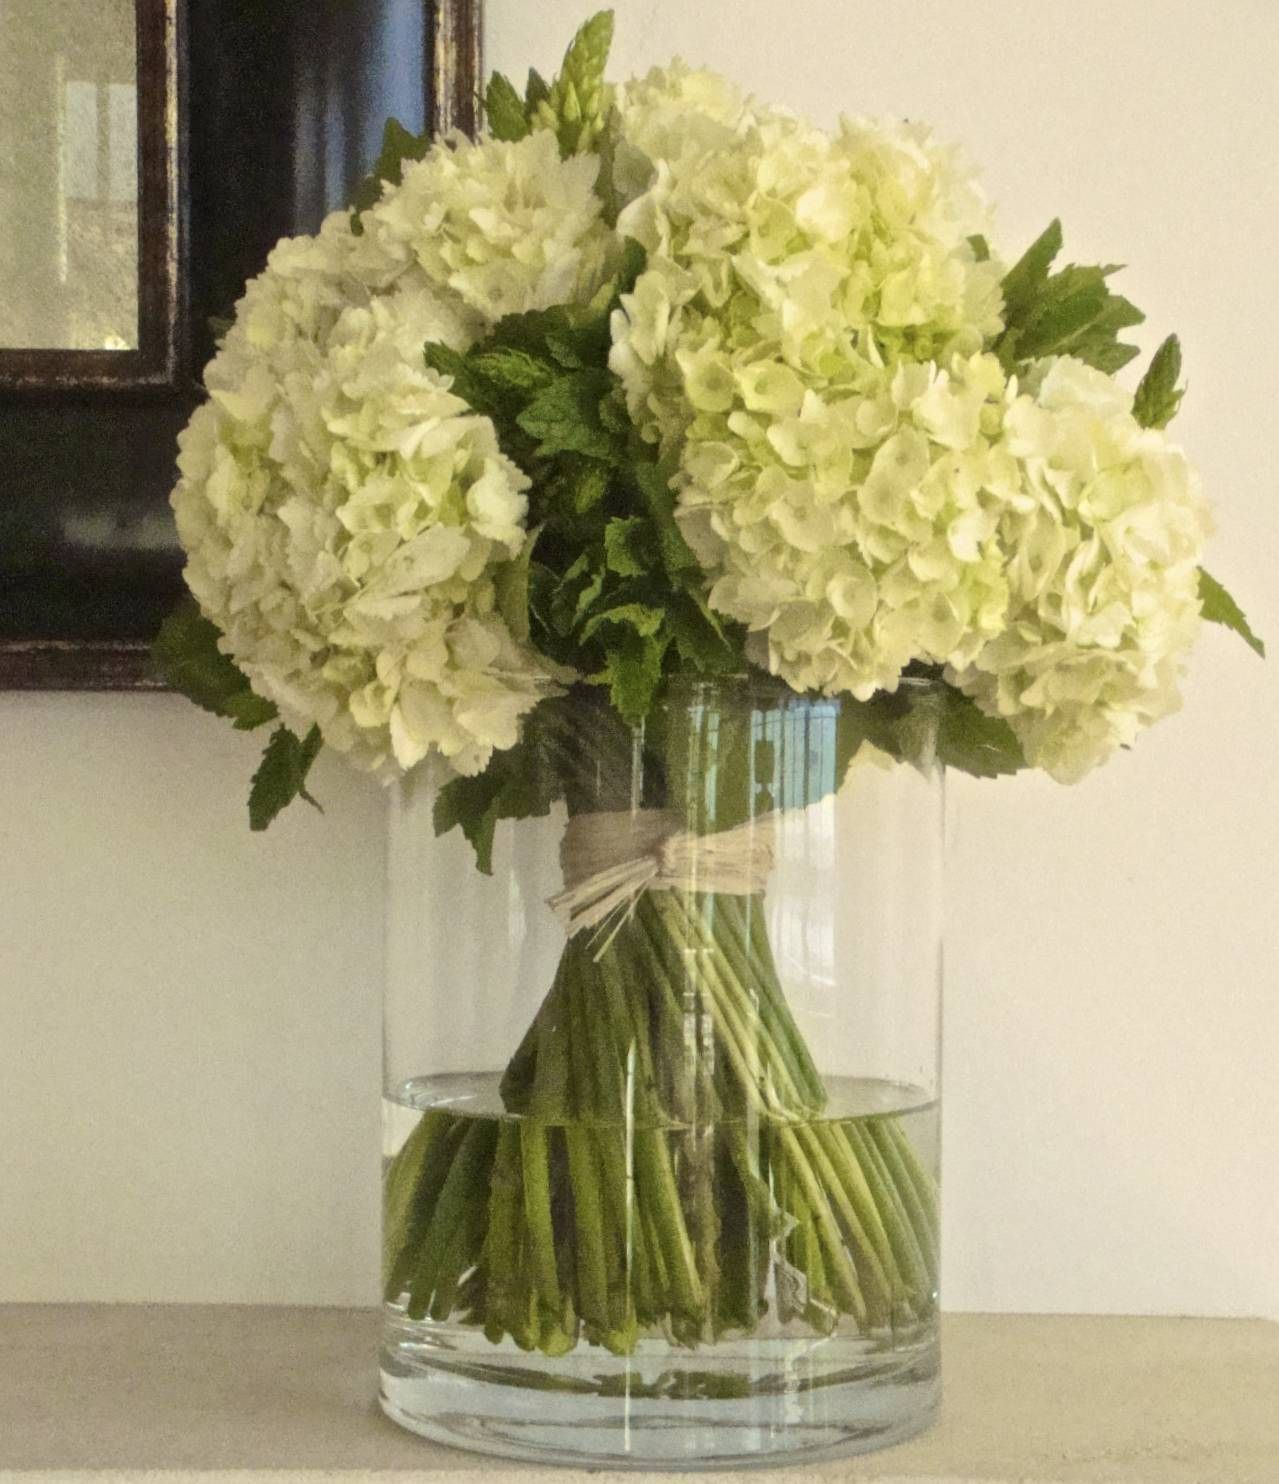 Hand Tied Bouquet Of Hydrangeas Star Of Bethlehem And Mint